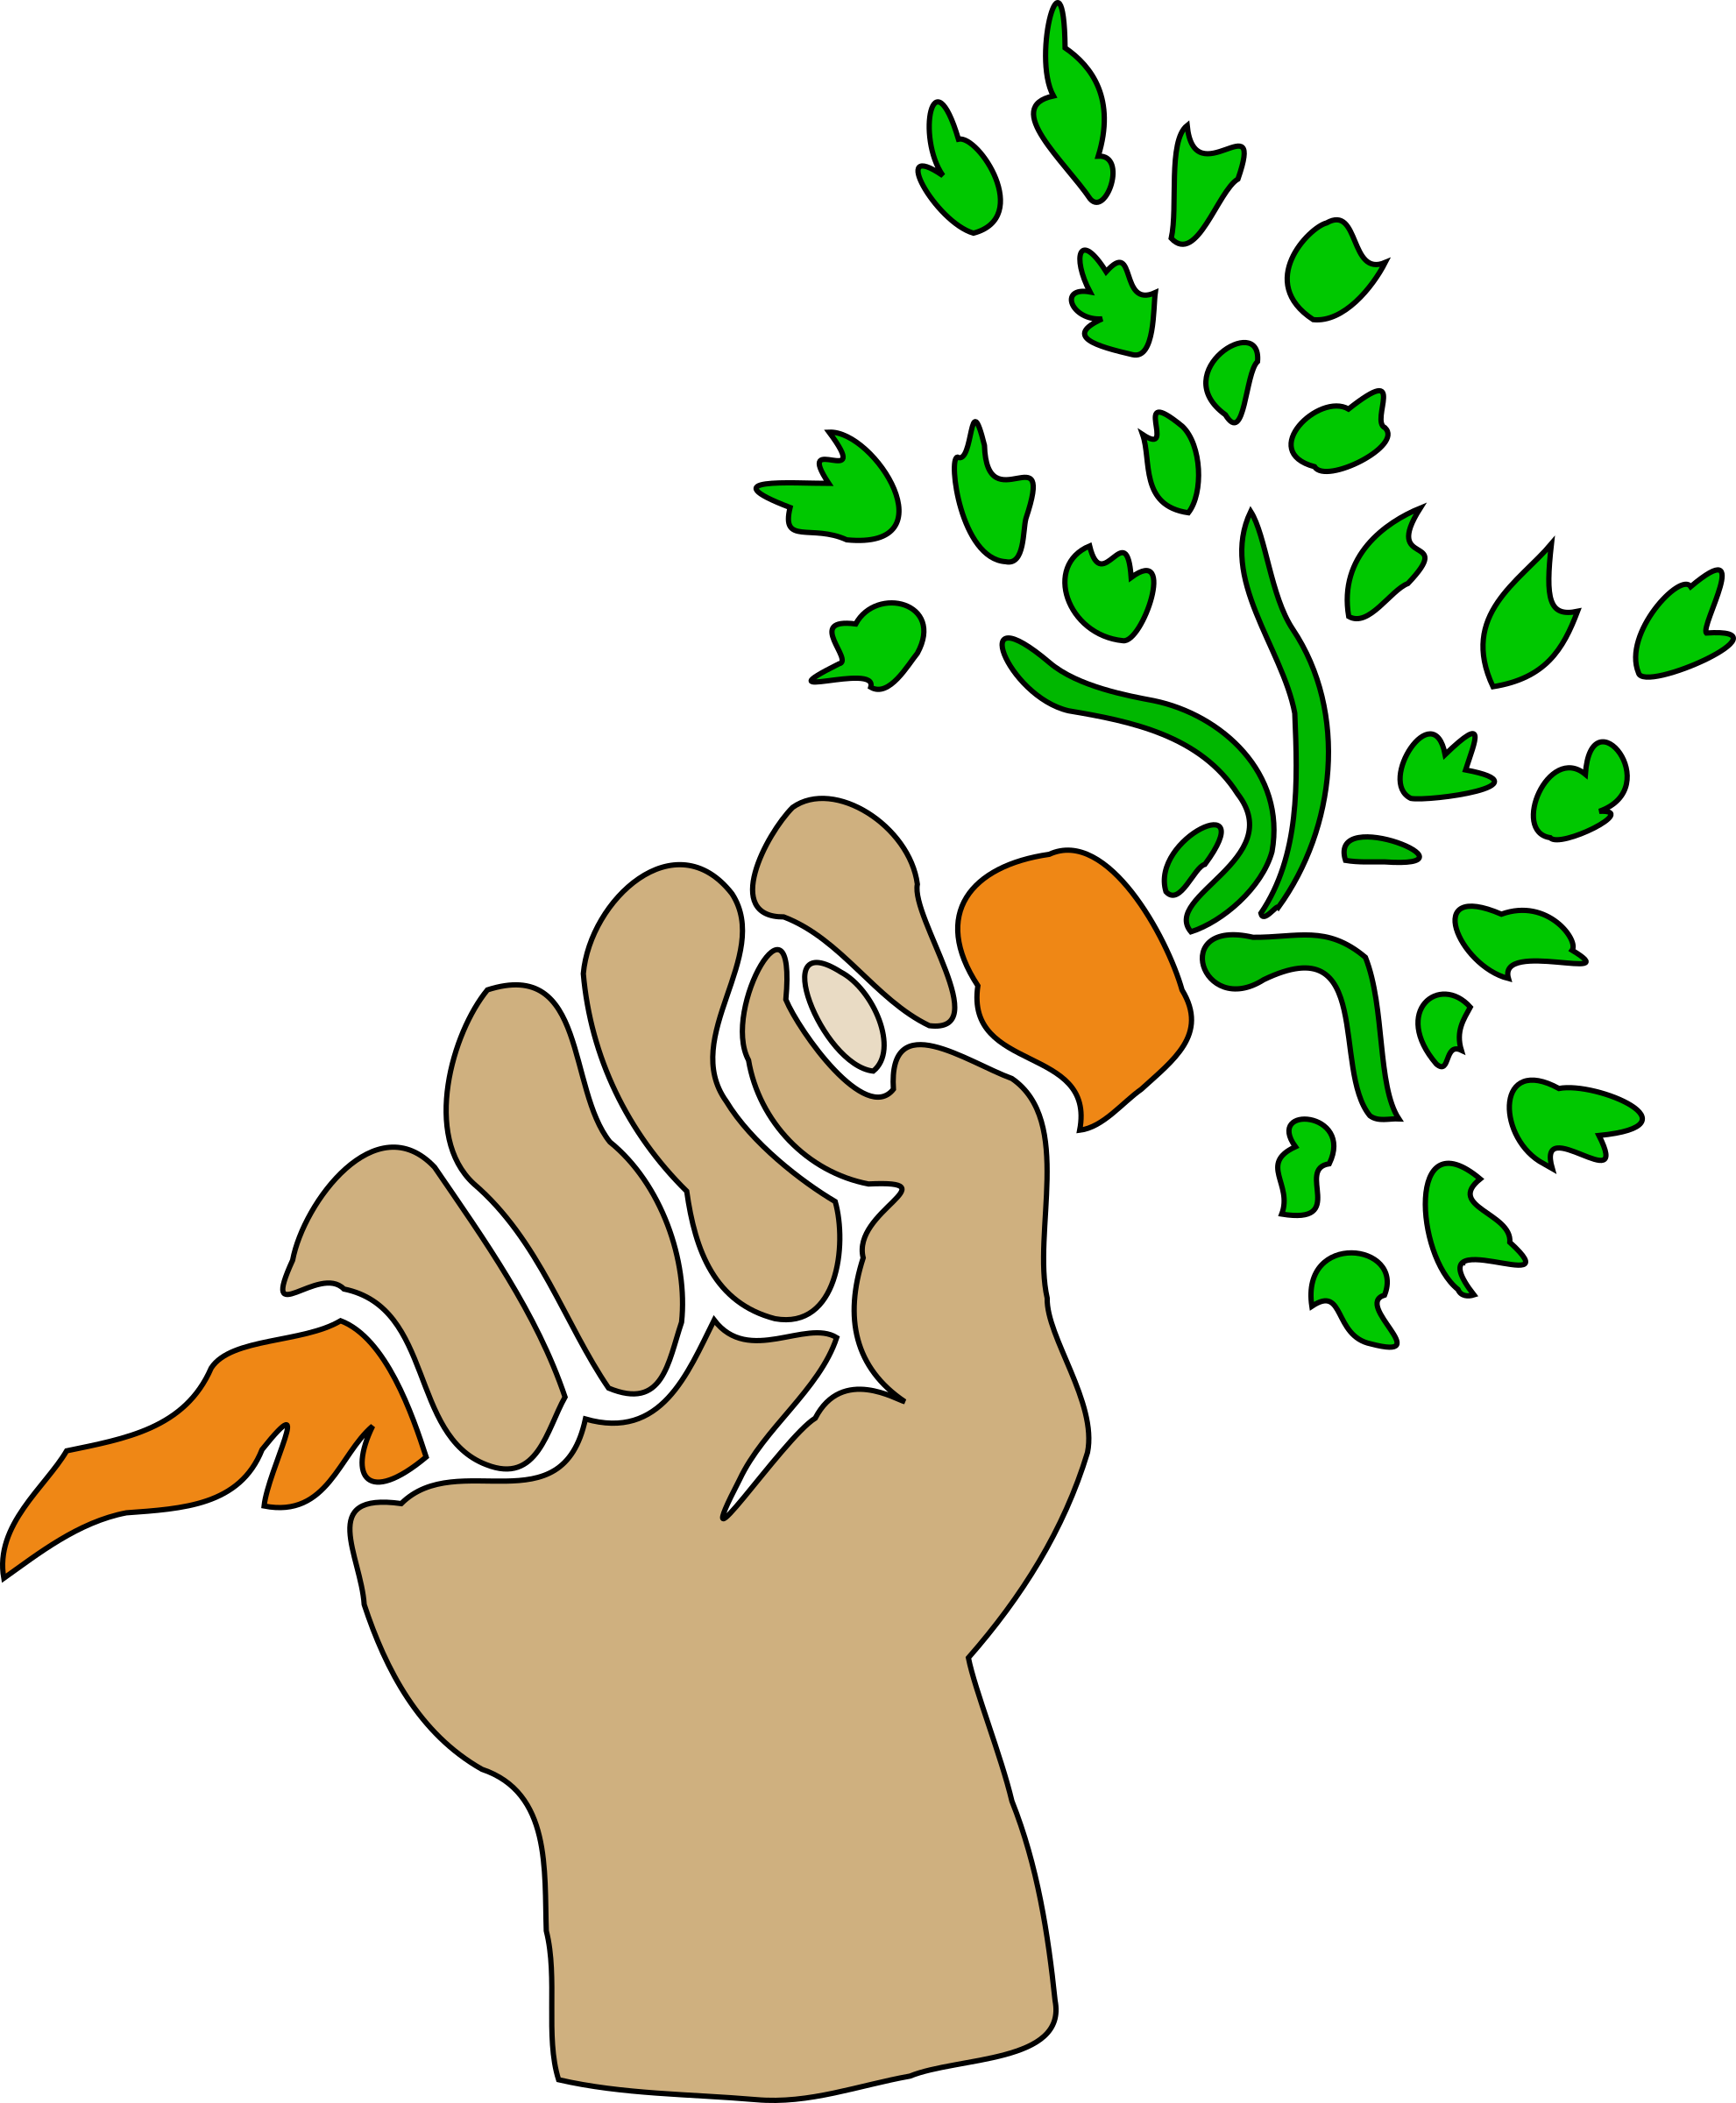 Hand holding carrot by liftarn